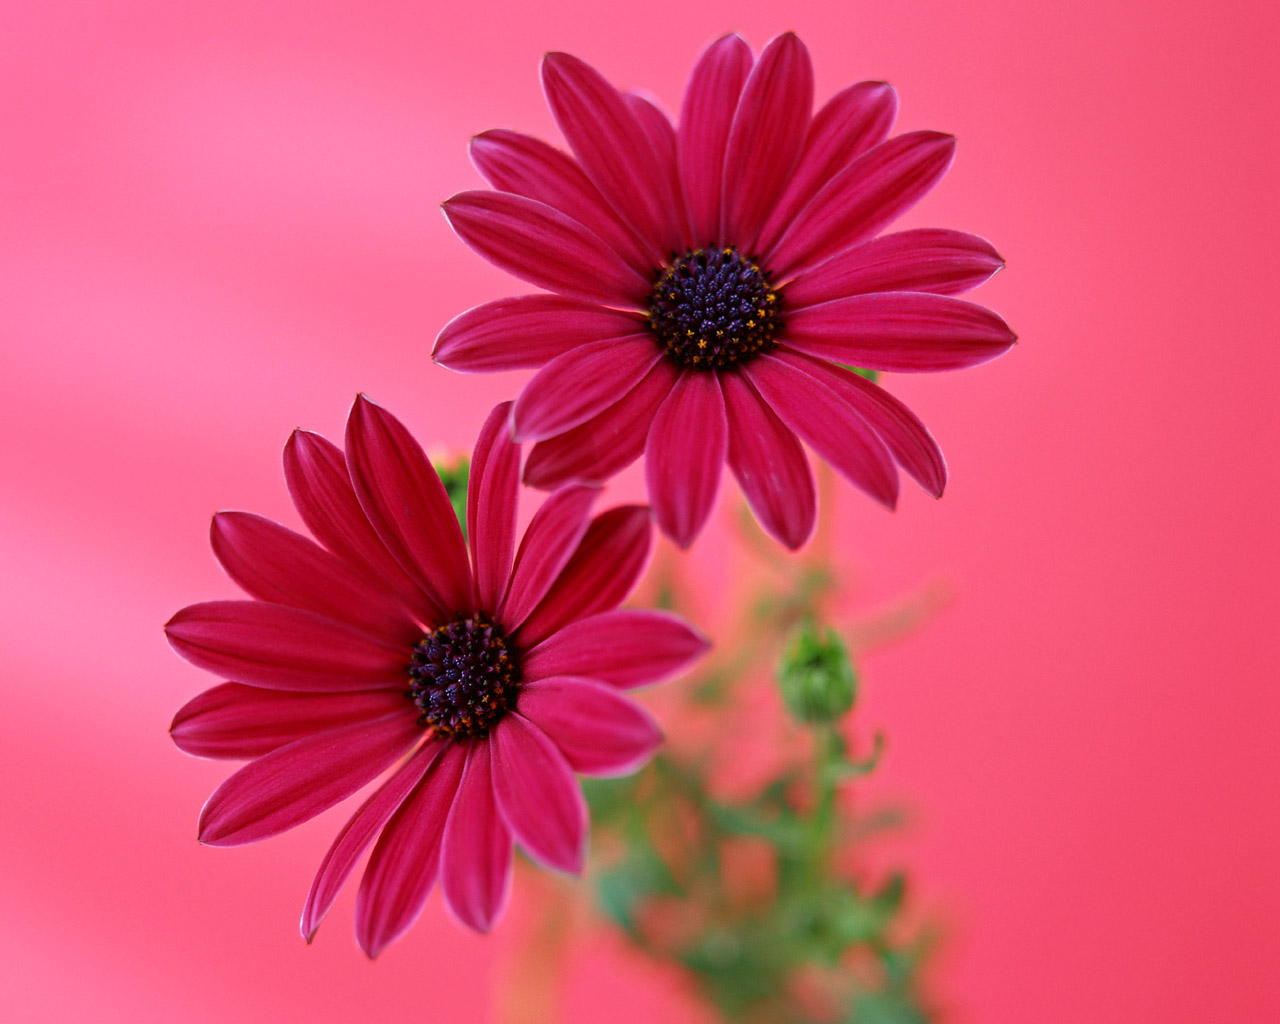 Beauty Flower Gerbera Daisy Flower